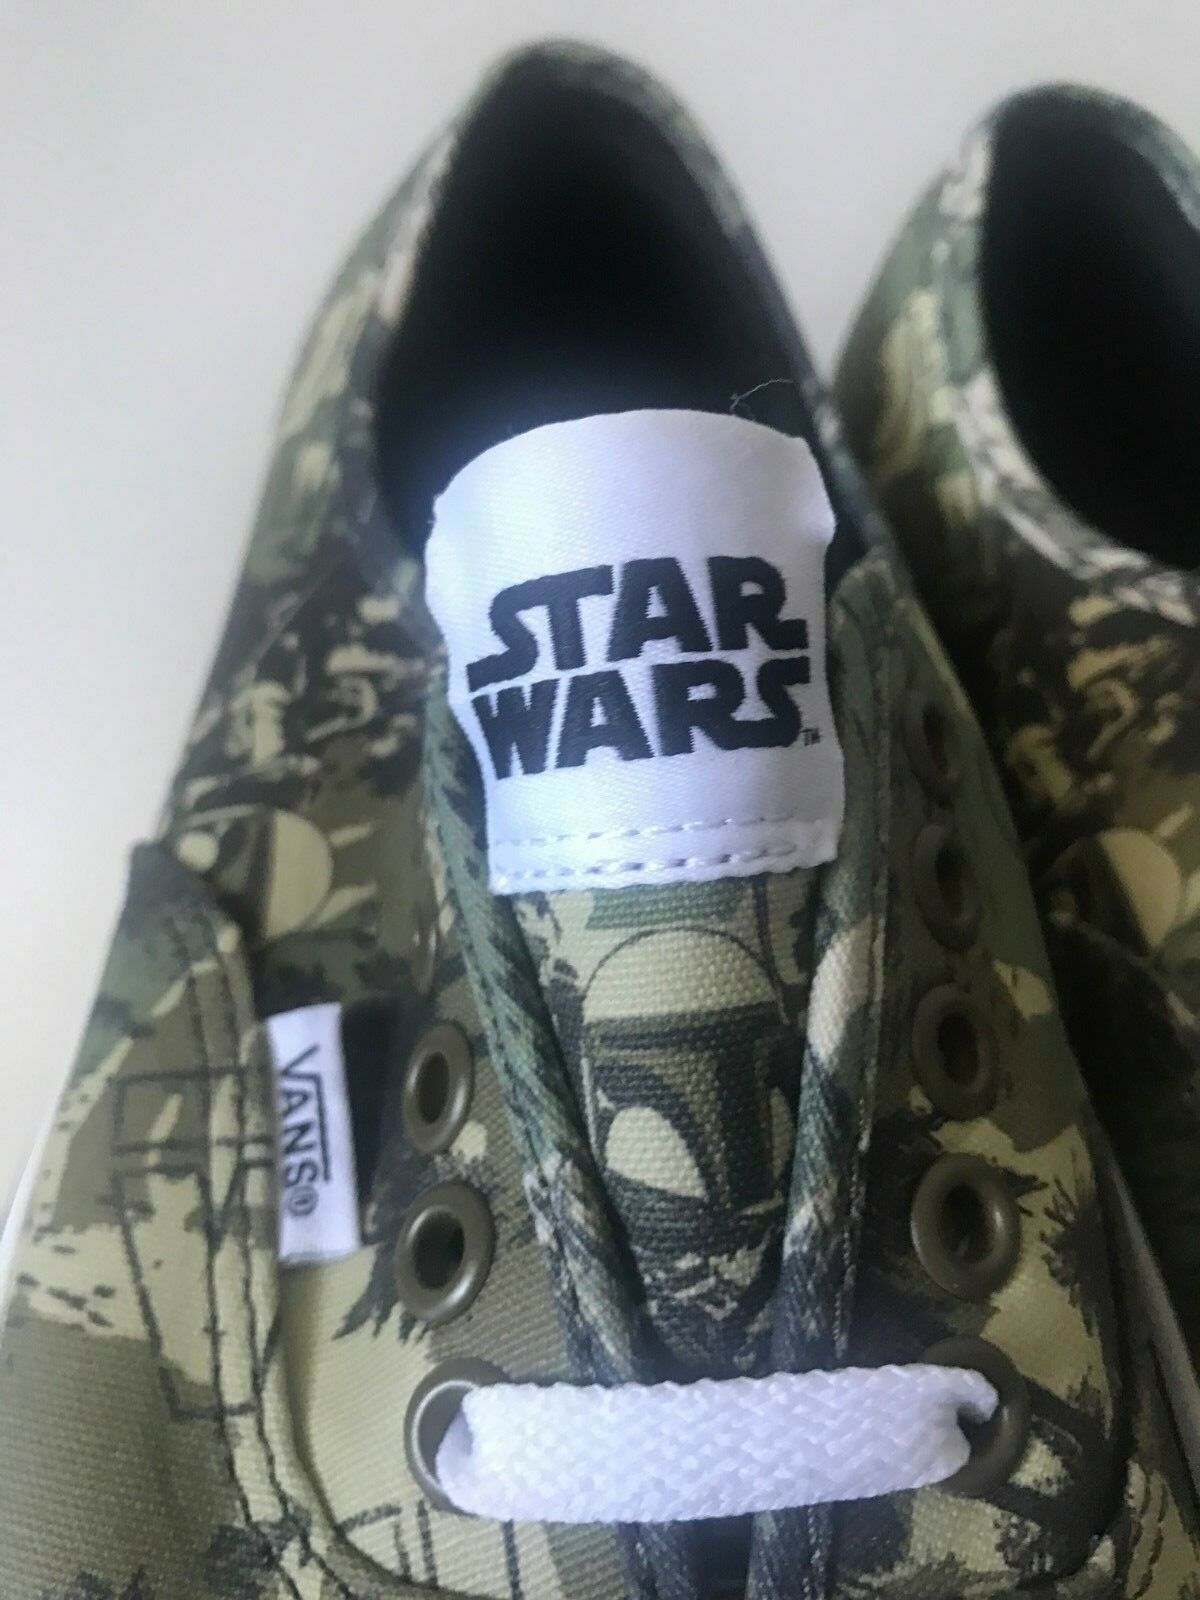 VANS STAR STAR STAR WARS AUTHENTIC BOBA FETT CAMO 8-13 NEW HOPE  SYNDICATE REPEAT 79879b